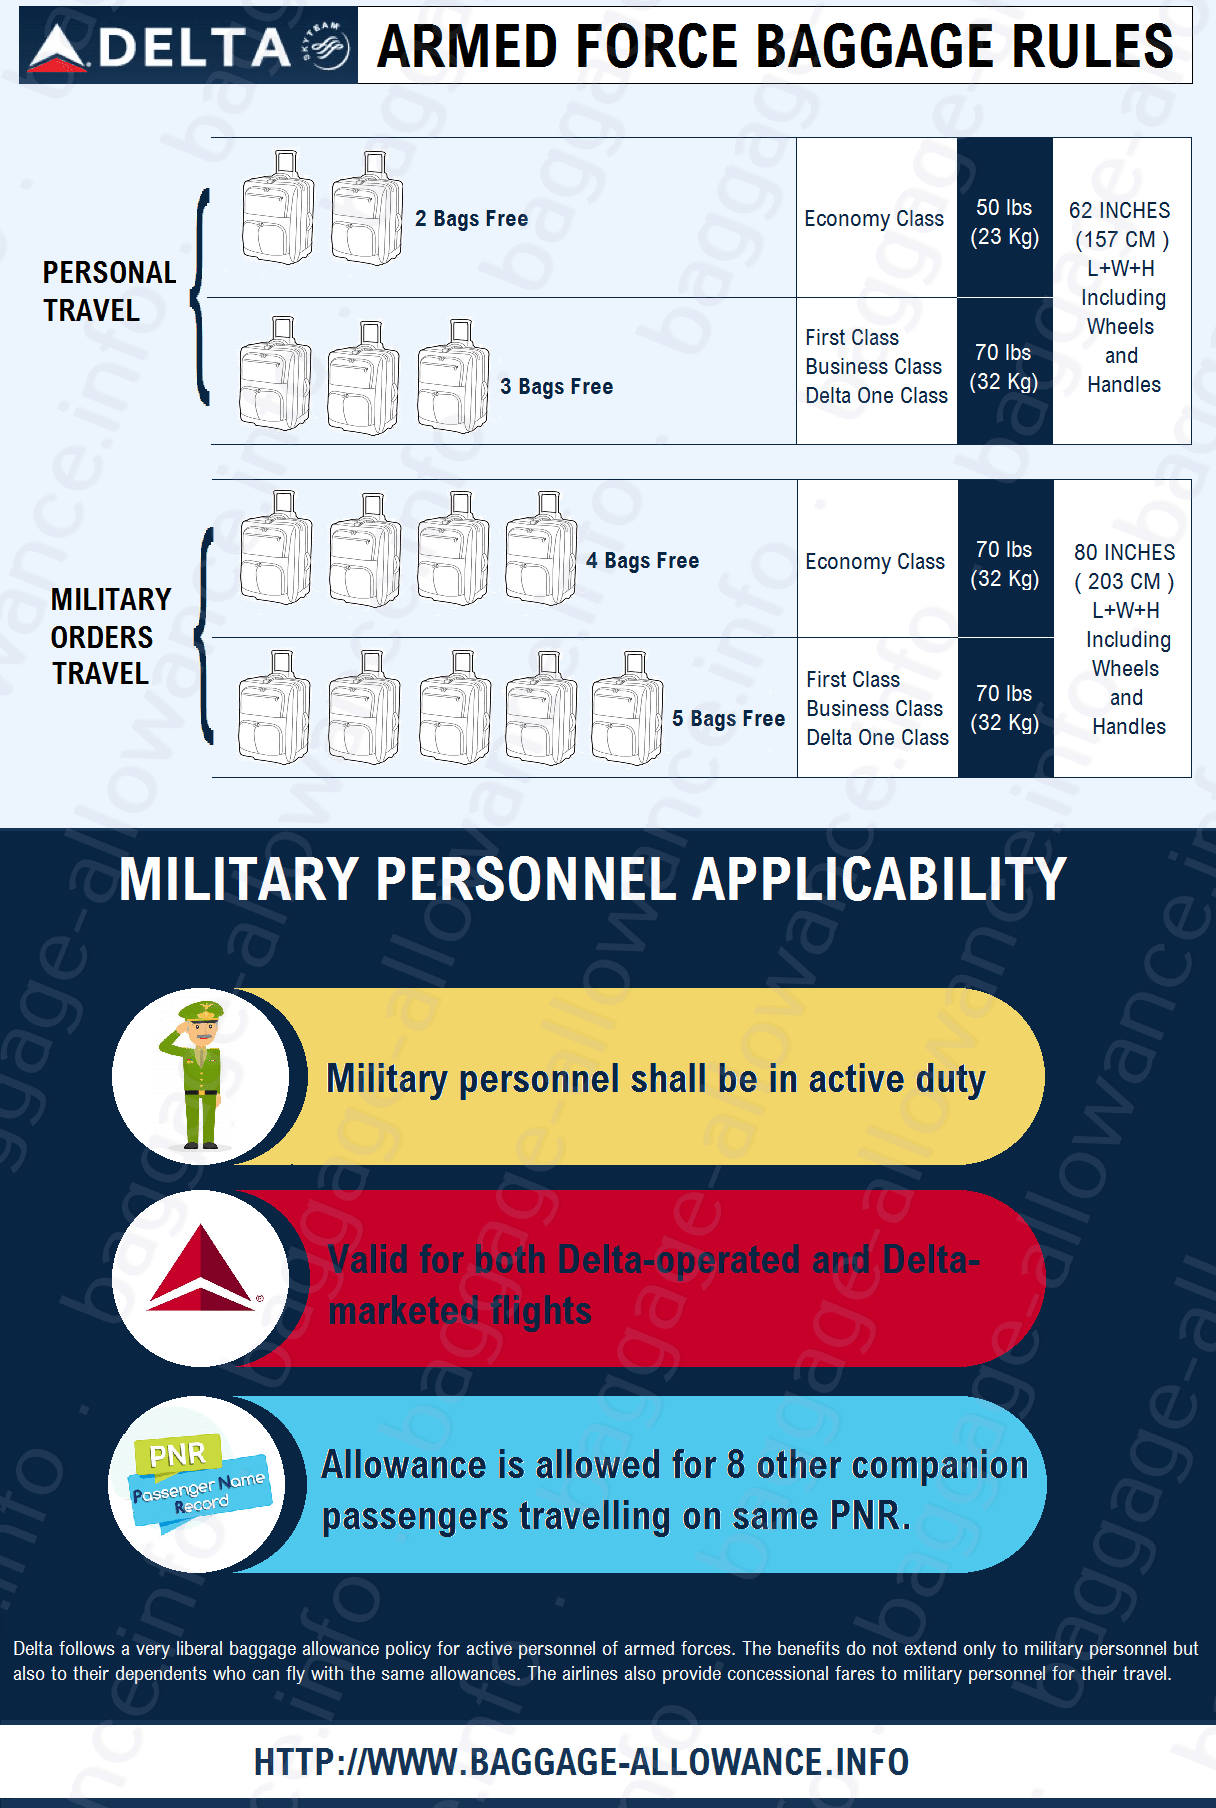 Deltaairlines Policy Of Baggage Allowance For Armed Forces